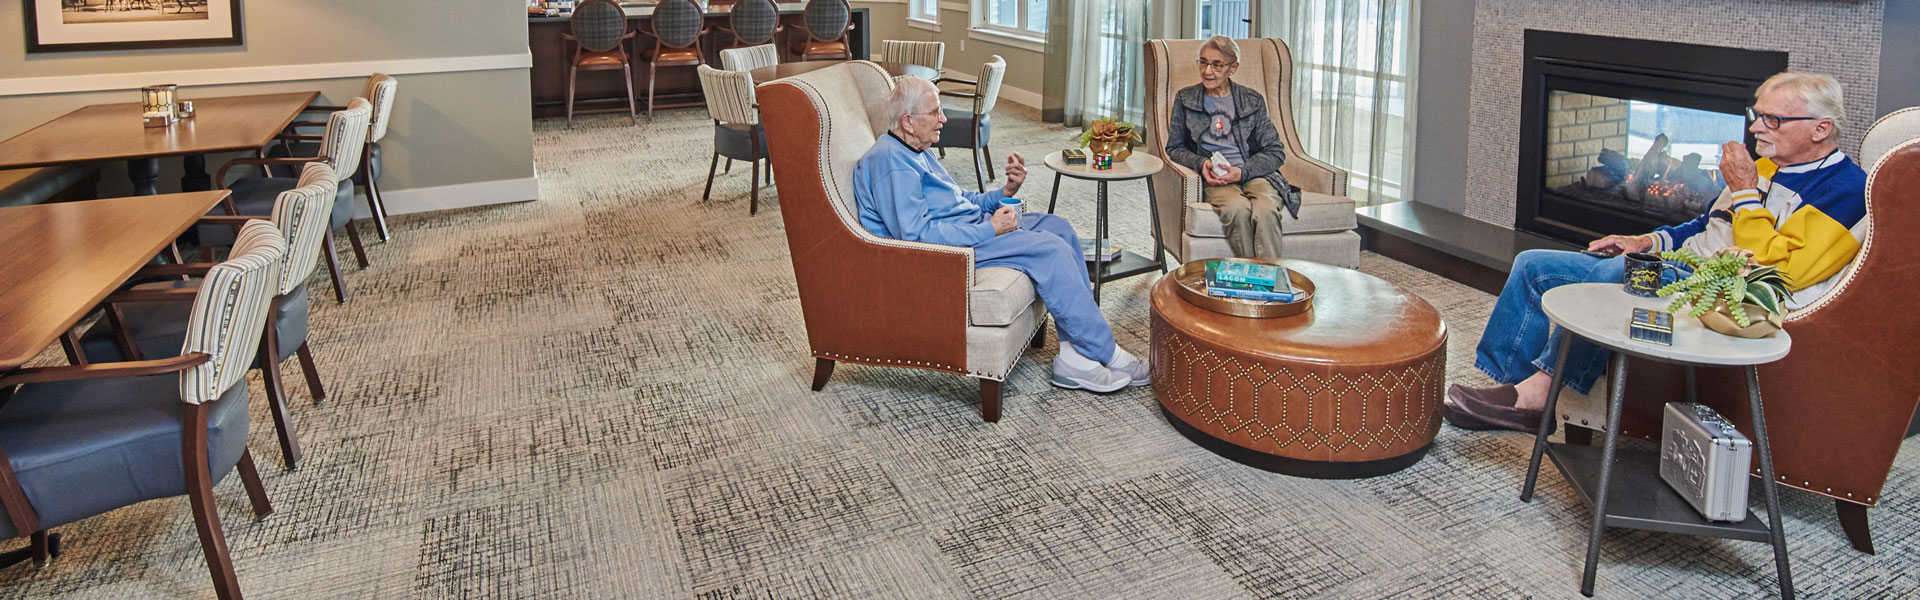 group of seniors gathering in their retirement community